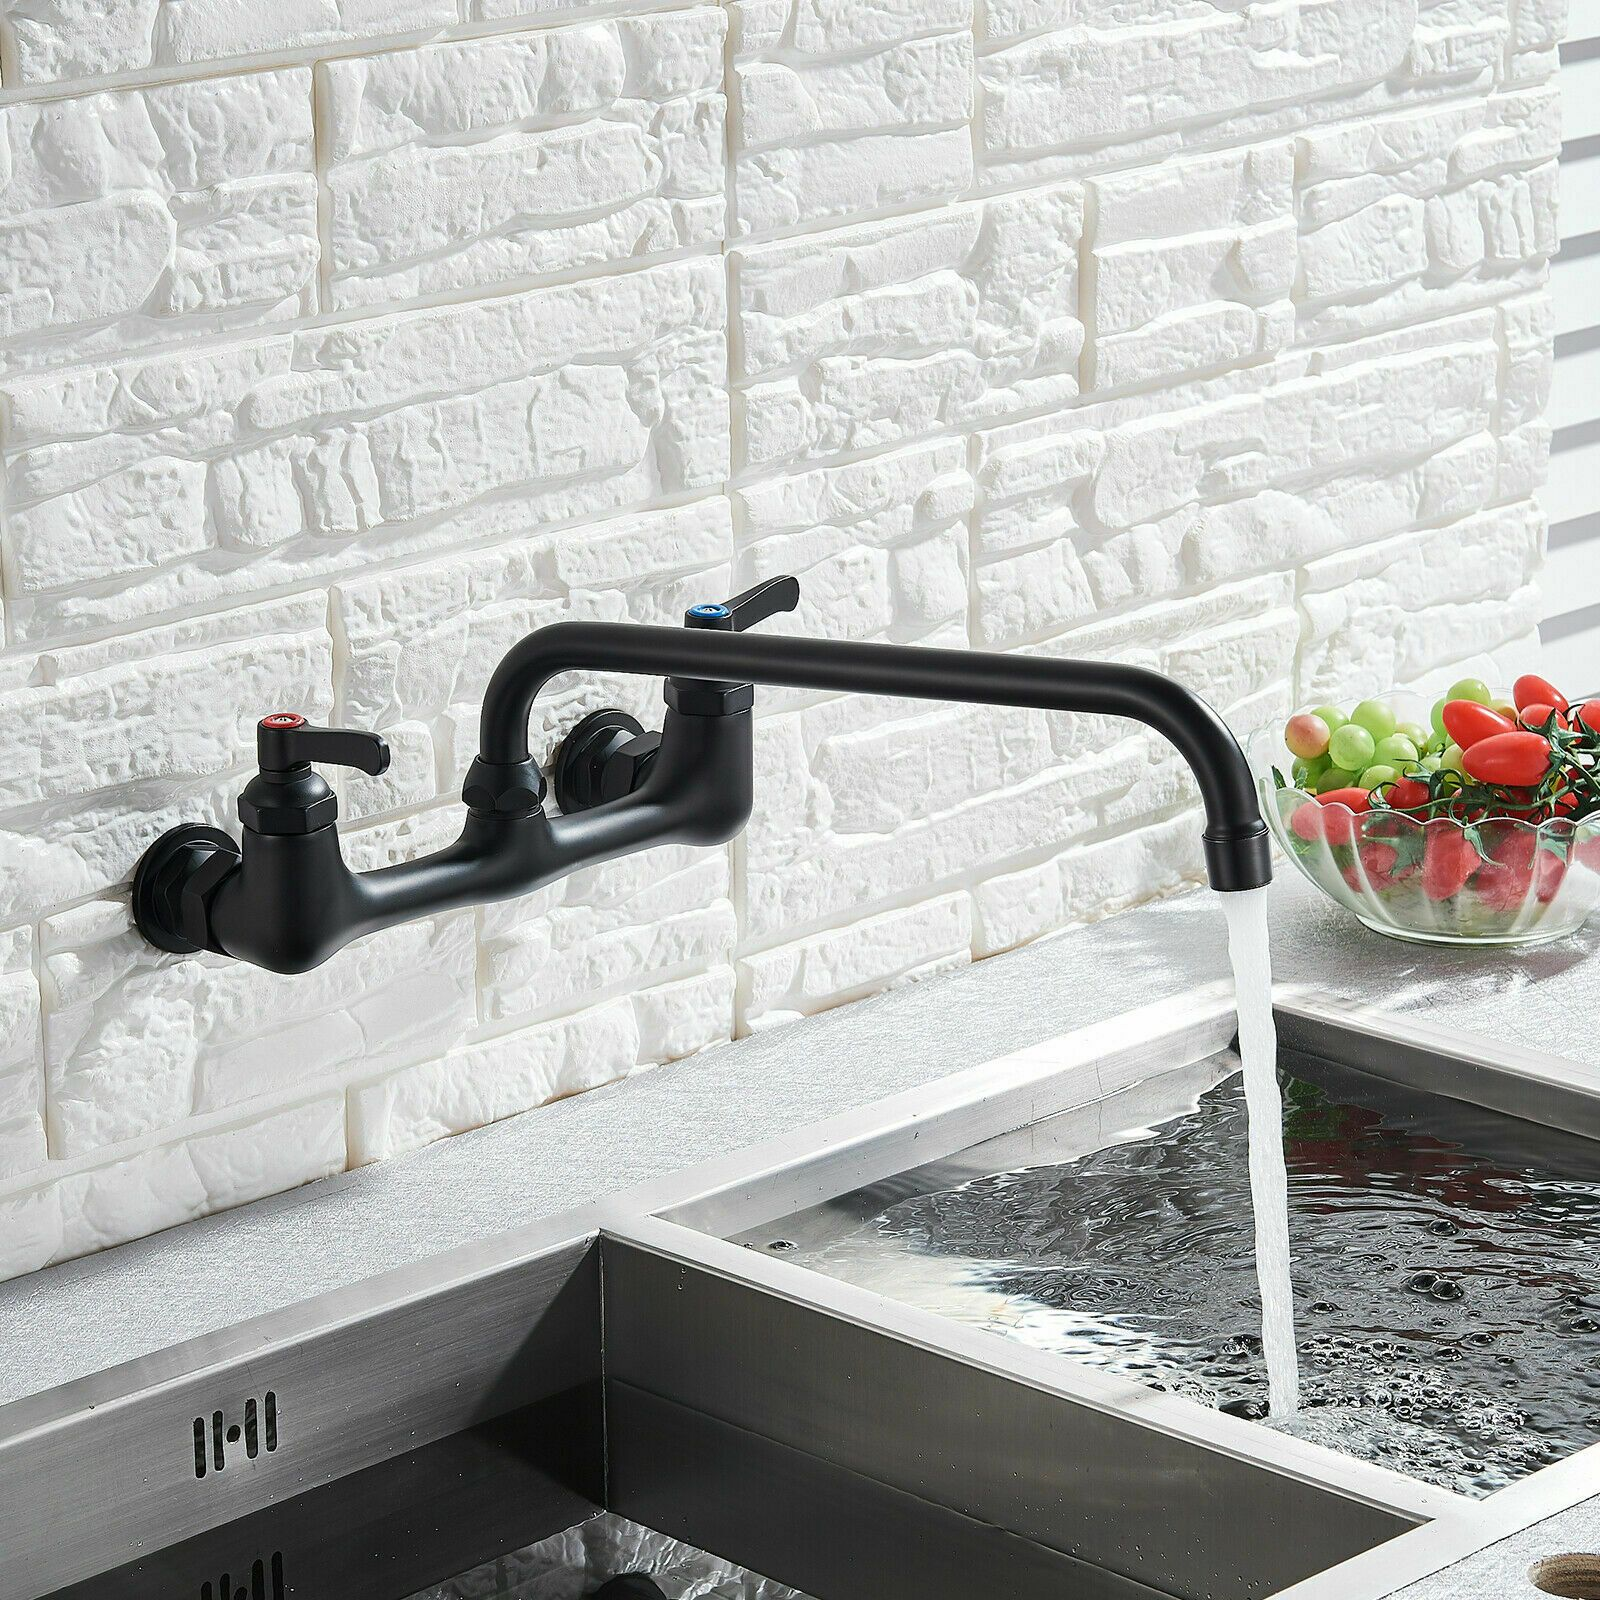 Wall Mount Kitchen Faucet 8 Center Commercial Faucet With 12 Inch Swivel Spout Wall Mount Kitchen Faucet Kitchen Faucet Commercial Faucets